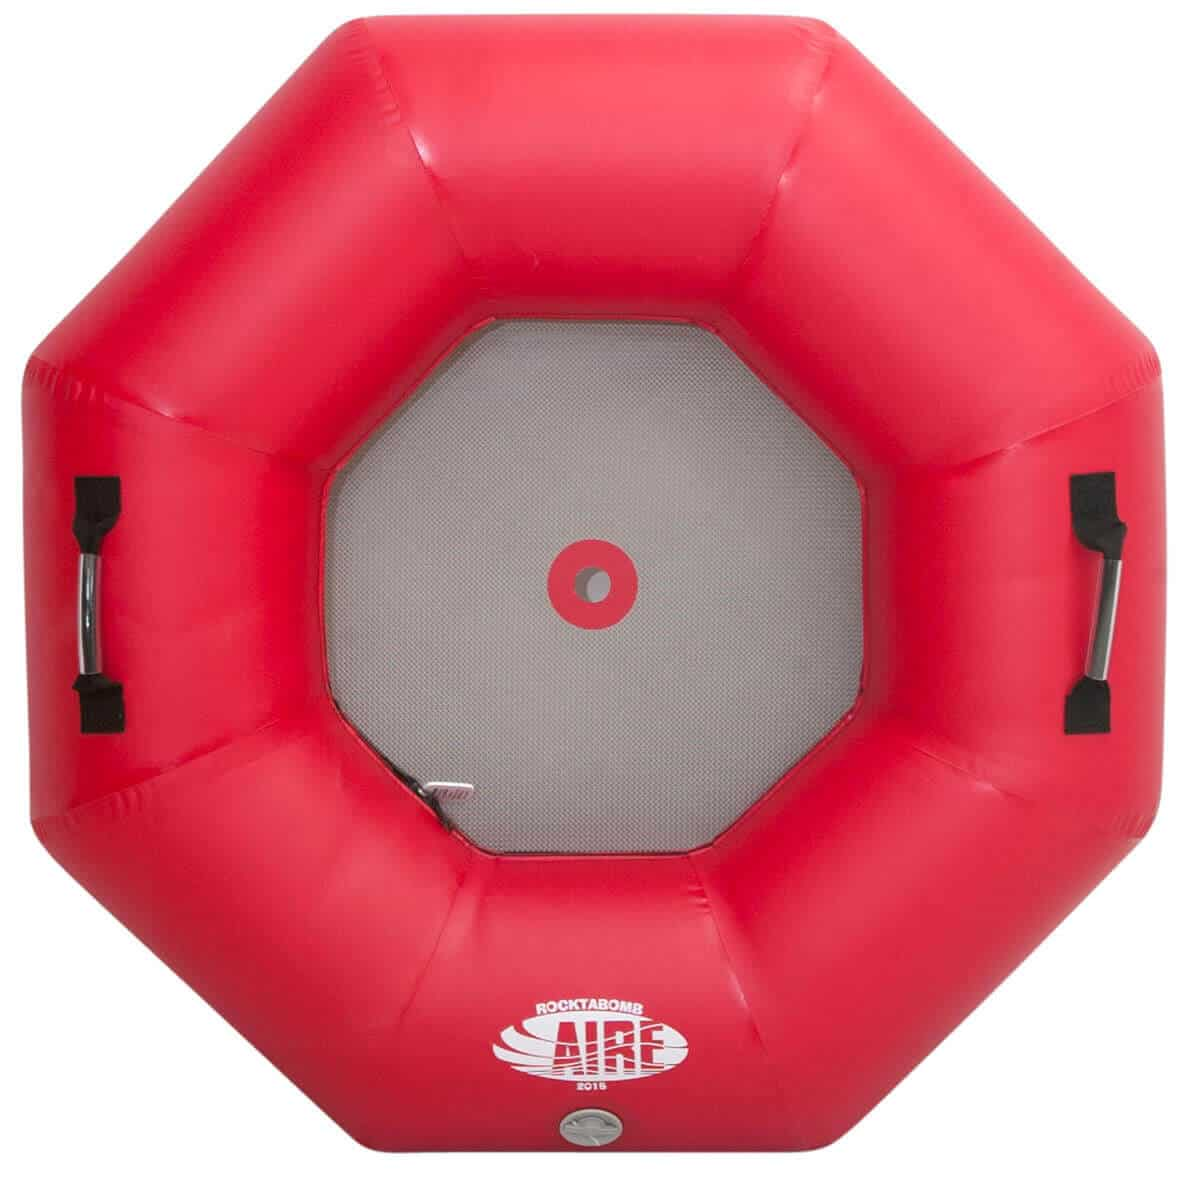 The top view of an AIRE Rocktabomb inflatable river tube in red.